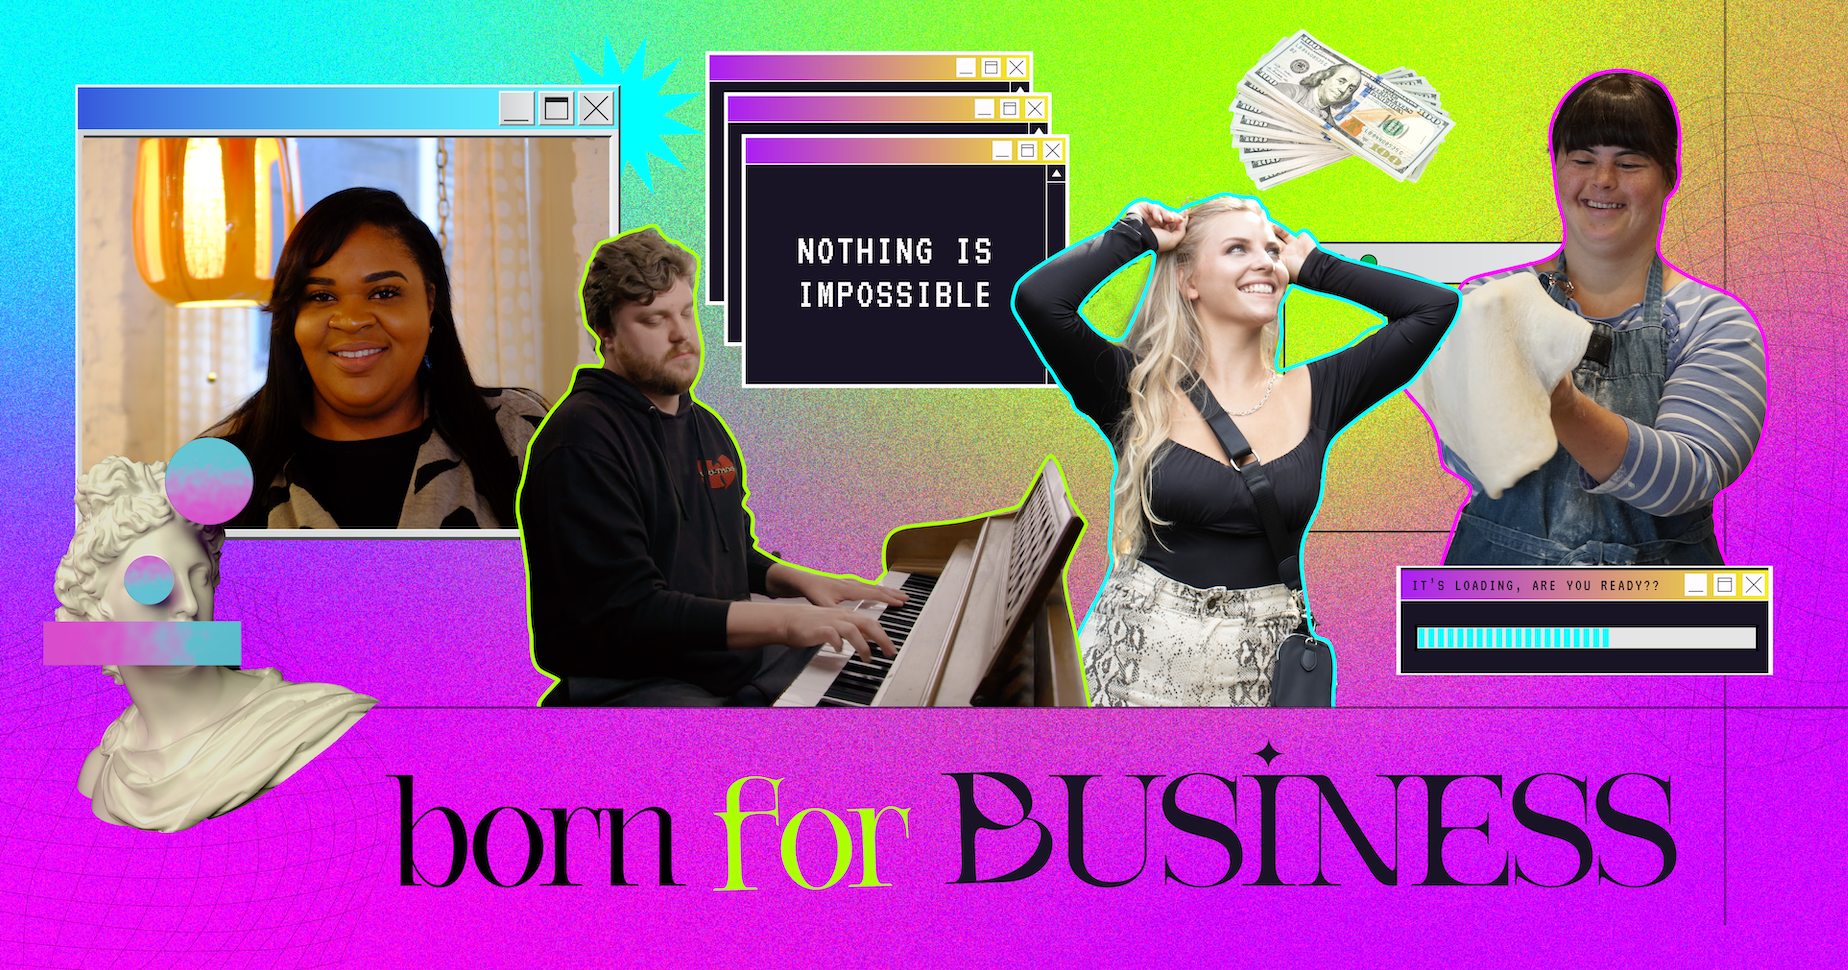 Born For Business header image with collage of cast members